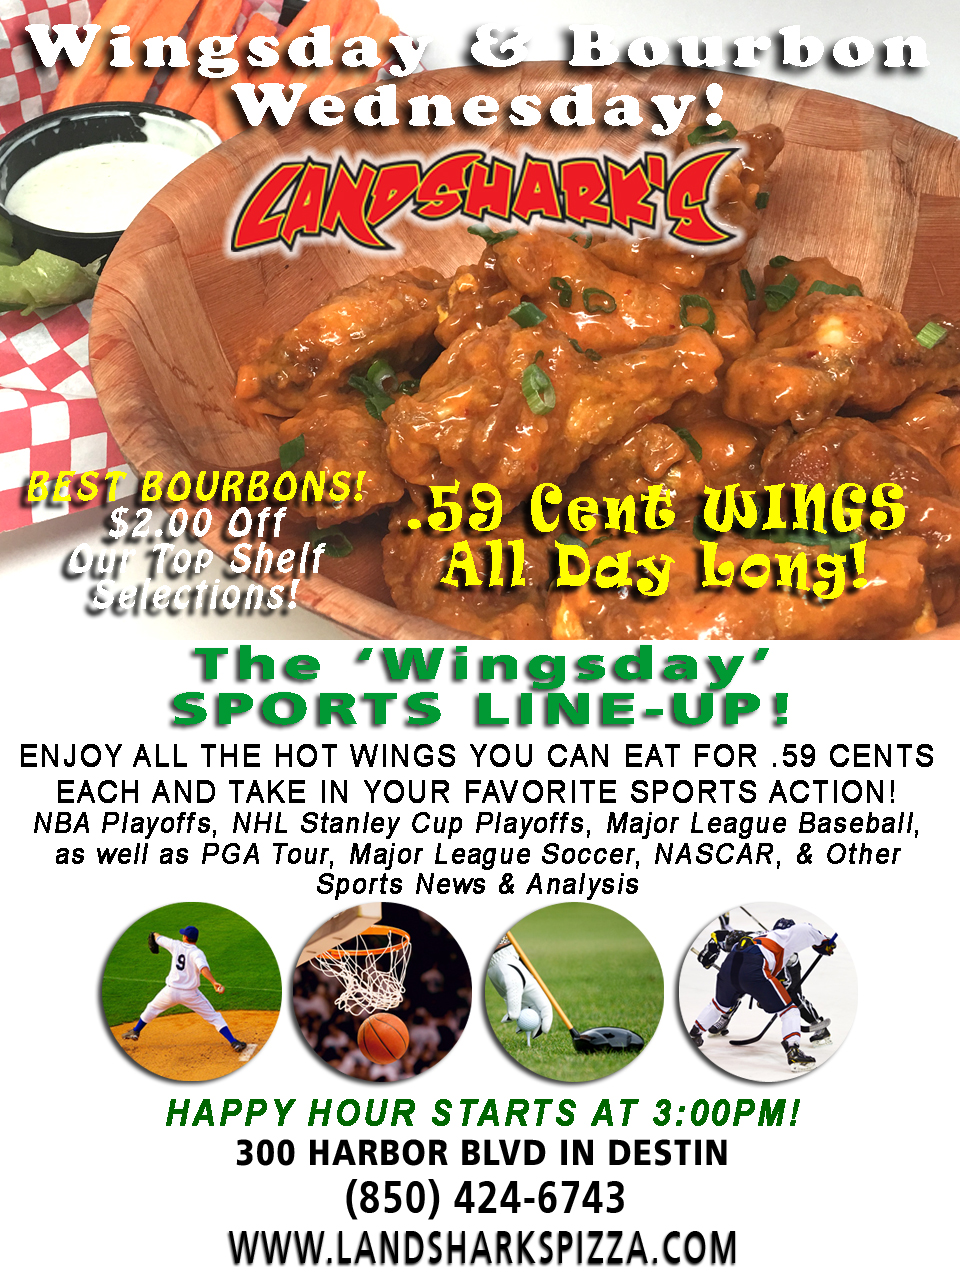 Best Buffalo Hot Wings in Destin FL Wingsday